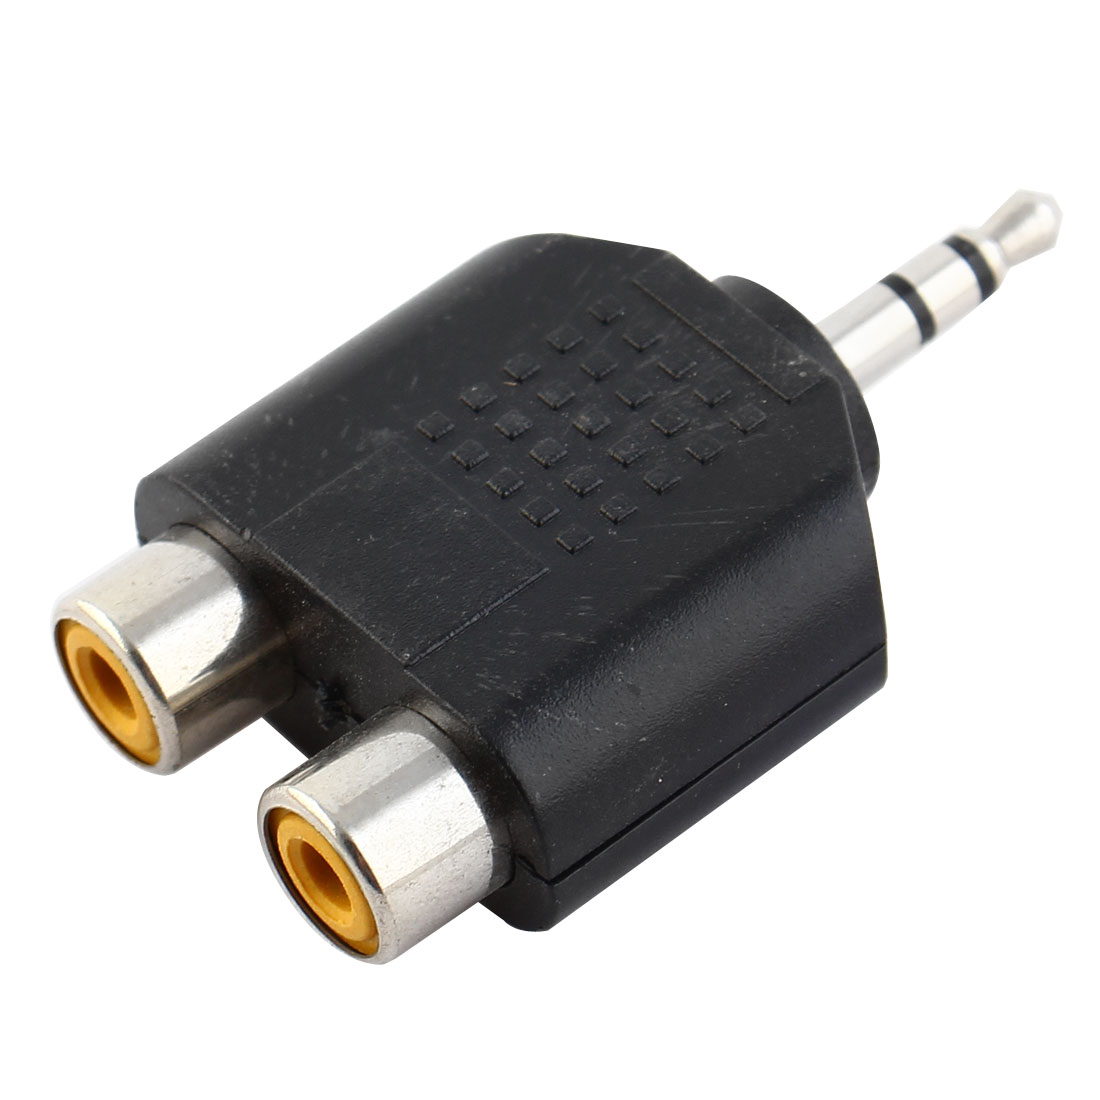 3.5mm Stereo Jack Male Plug to Dual RCA Female Sockets Splitter Connector Black